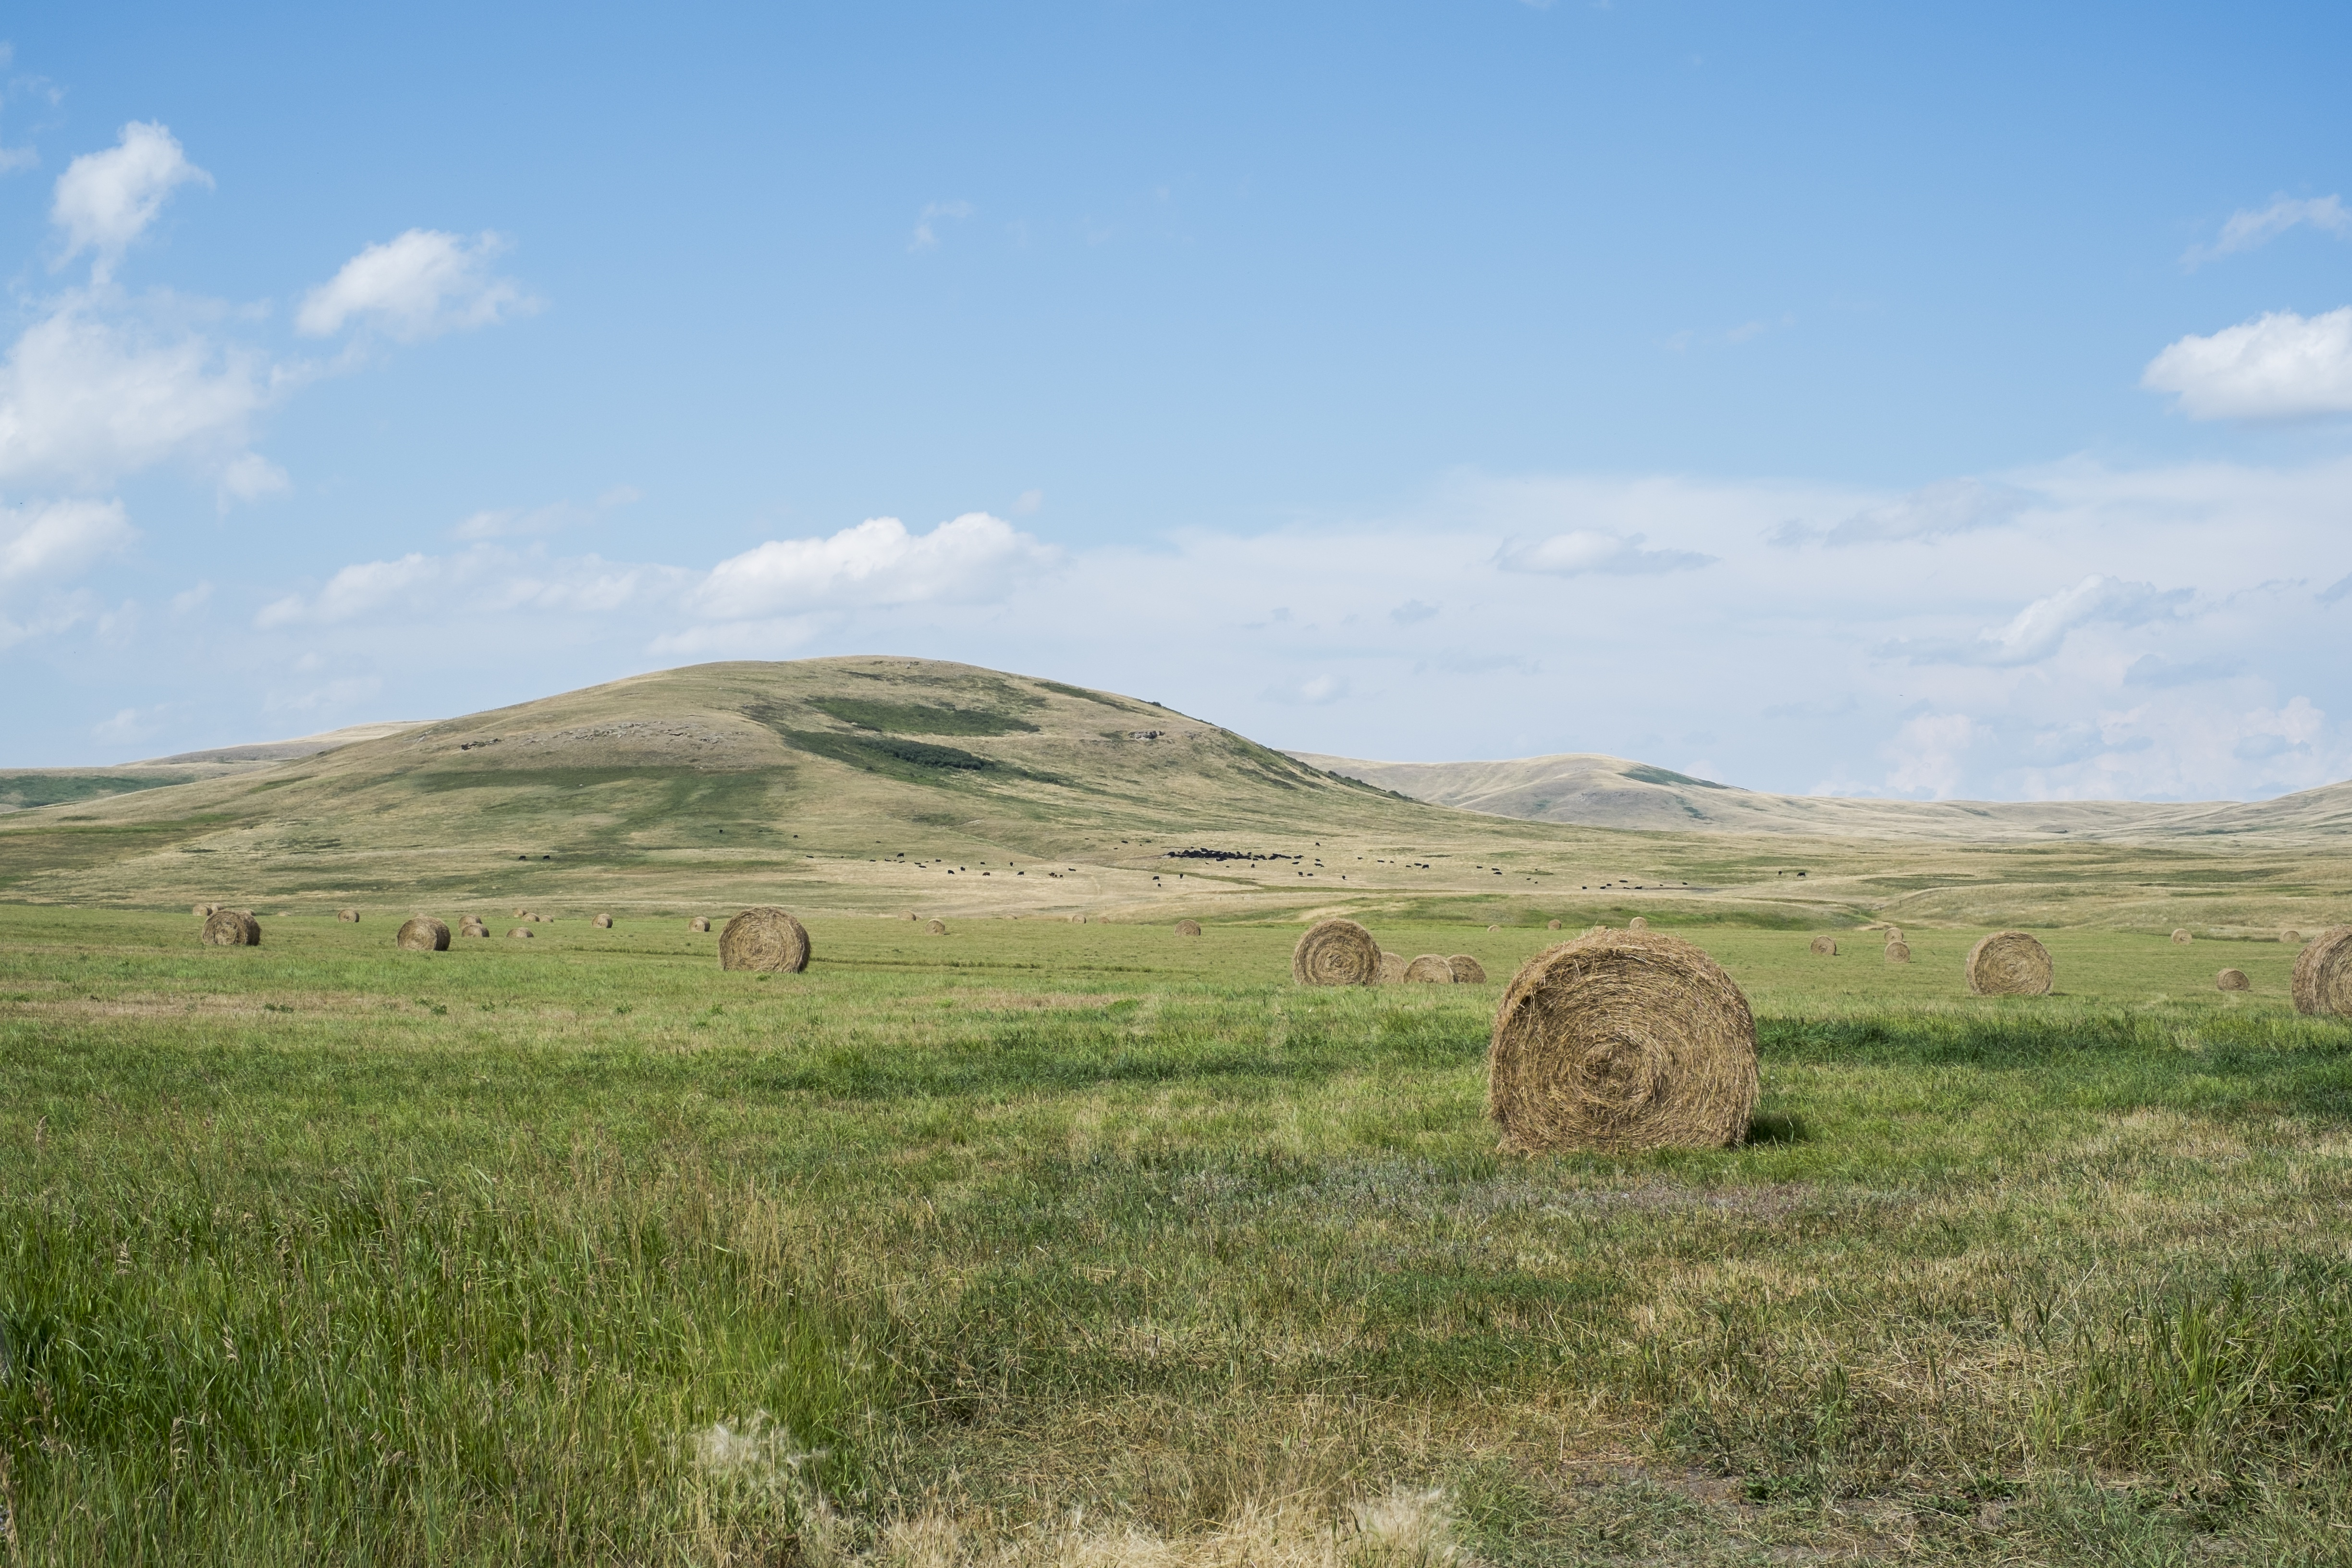 Four Pressing Needs in Rural Communities, and How the Church Should Respond